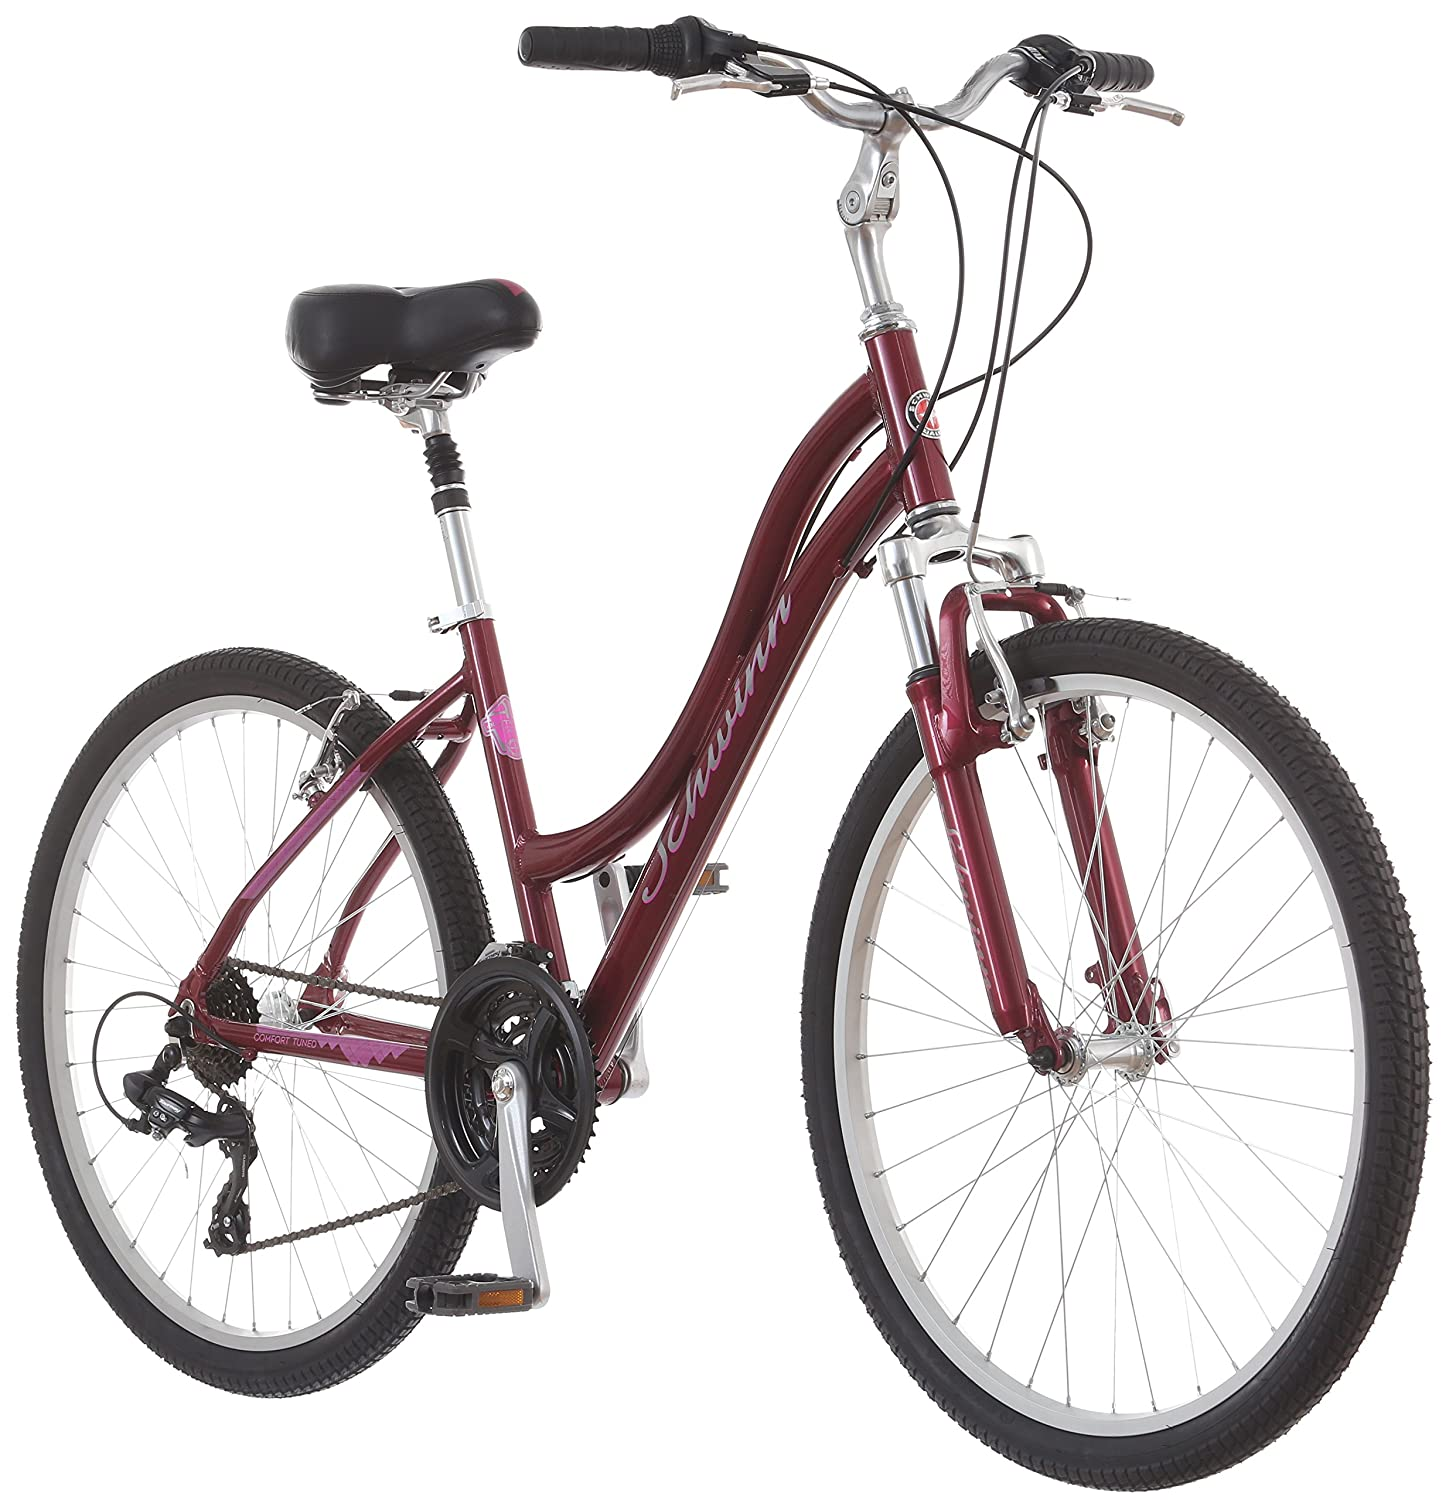 cypress commuter size mens cruiser by comfort assist iglide bicycles giant lithionics city e large bike electric comforter